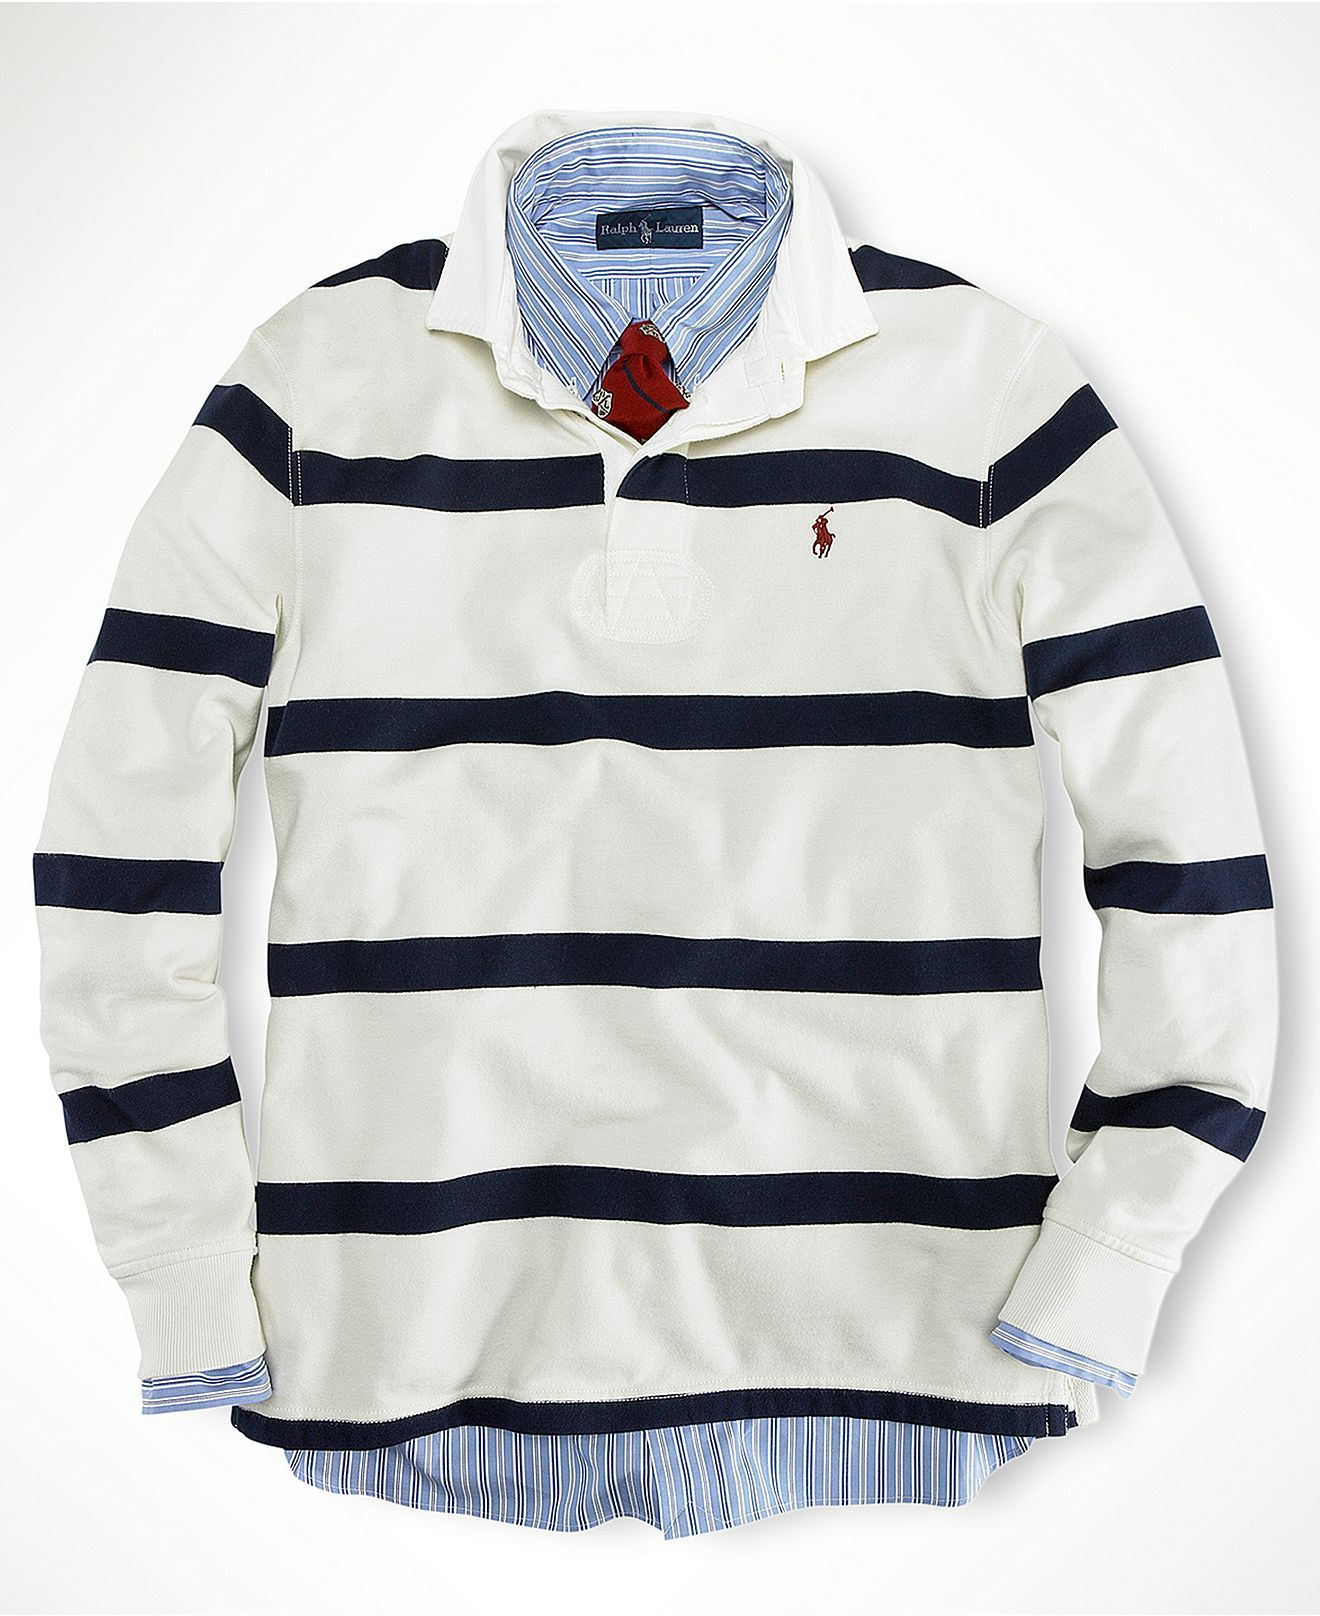 Pin by Lauren Brackett-Myers on Just for the Hubs | Preppy mens ...